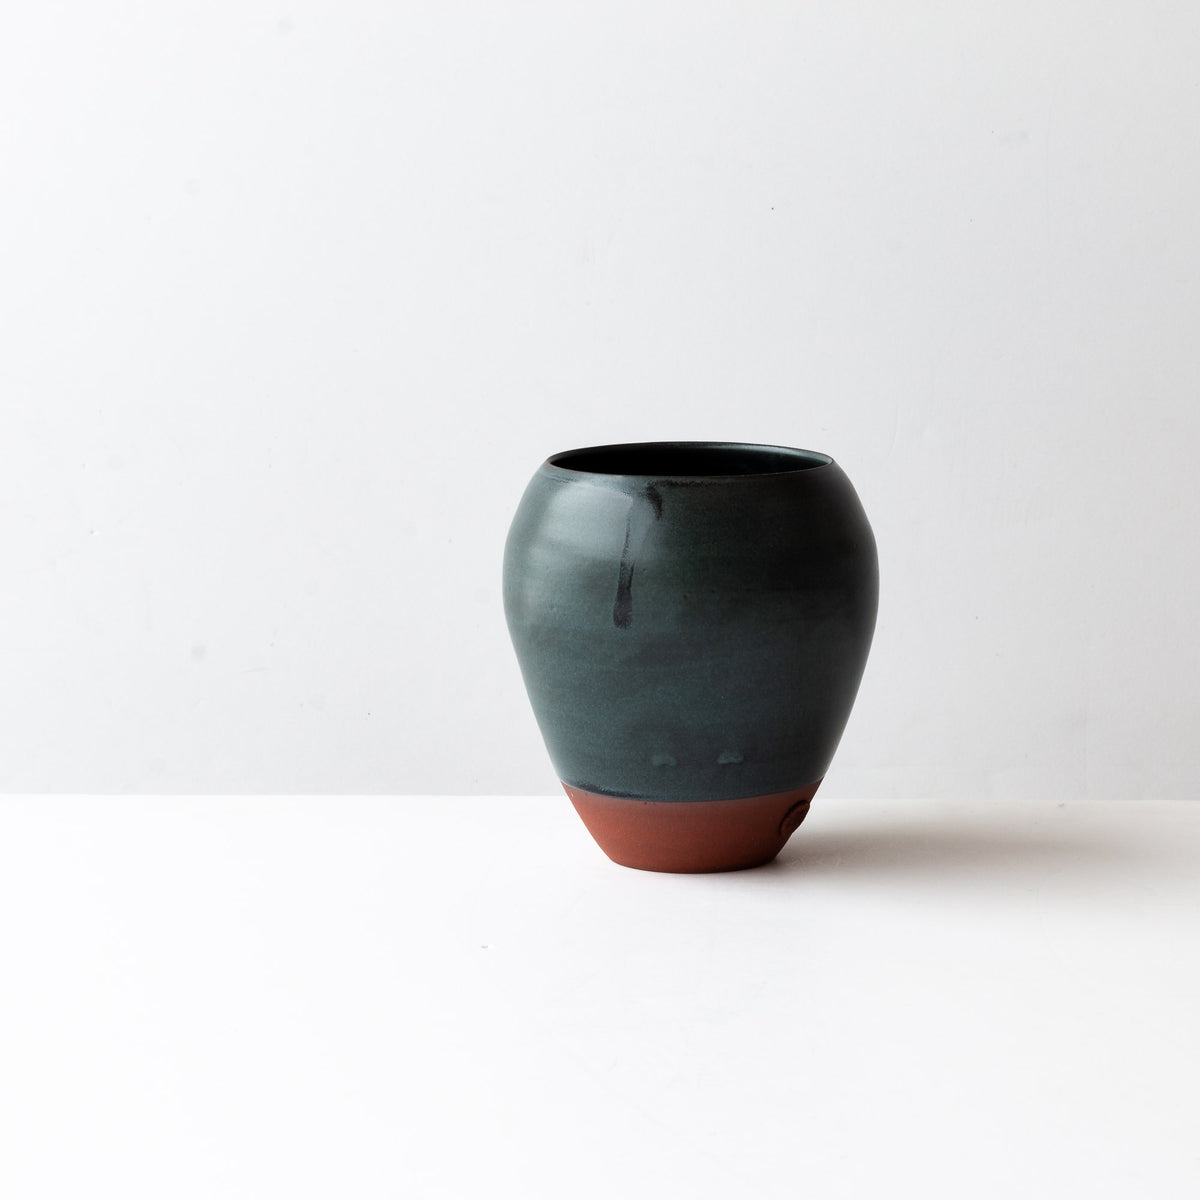 Charcoal Grey Flower Vase Handmade in Stoneware - Sold by Chic & Basta